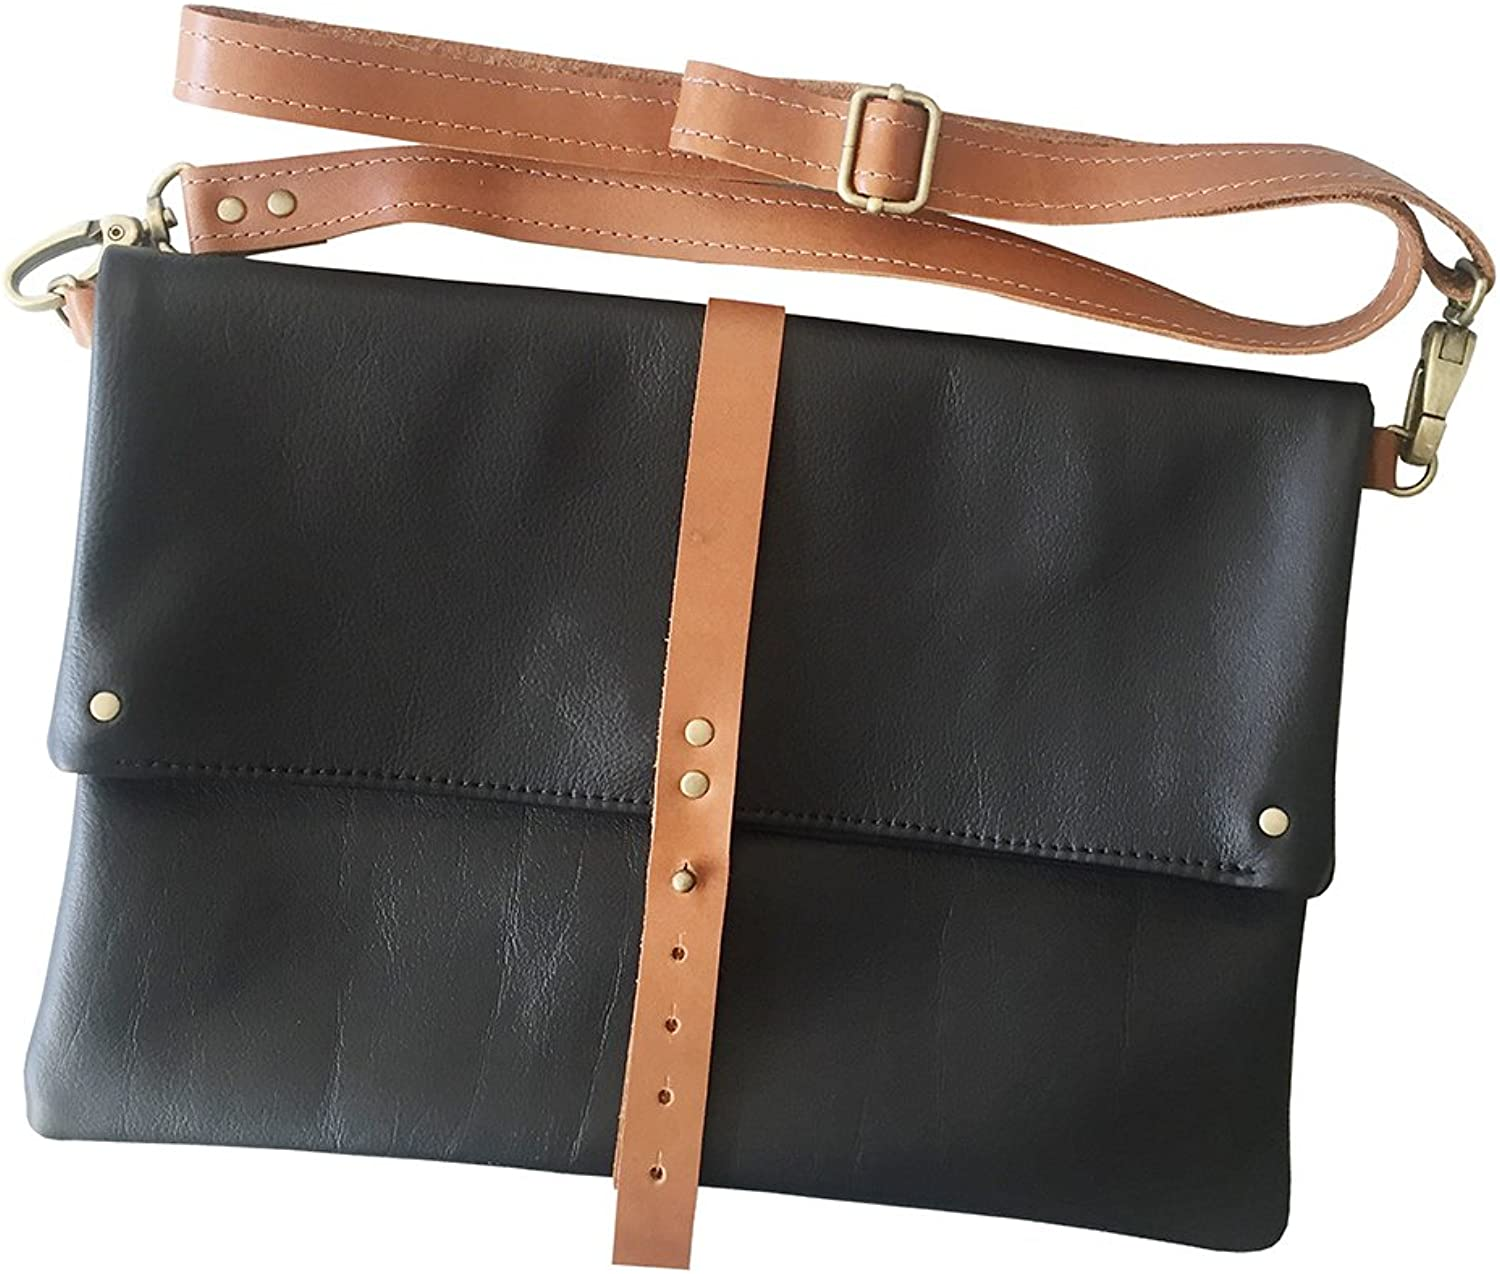 TCLA Handmade Foldover Crossbody in Black  Made in Los Angeles